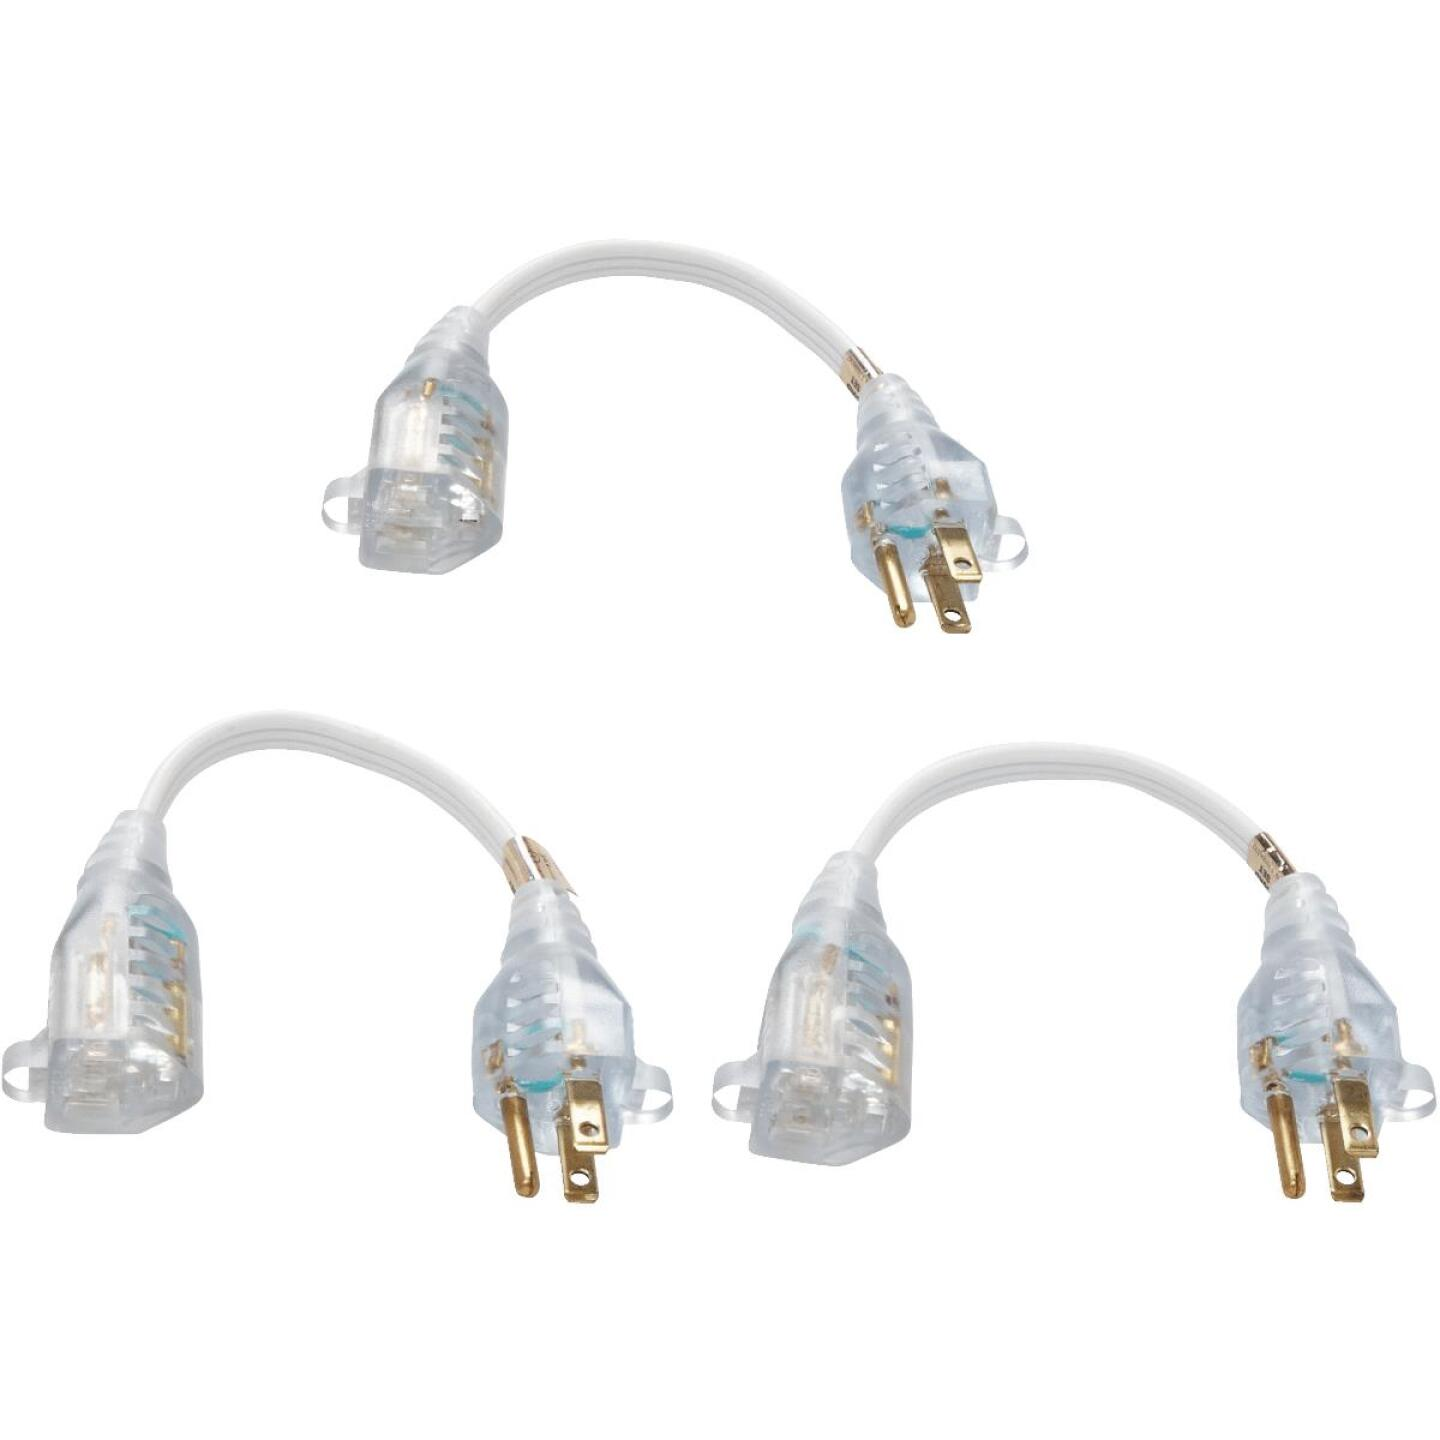 Do it Best 8 In. 16/3 Short Extension Cord Set (3-Pack) Image 2